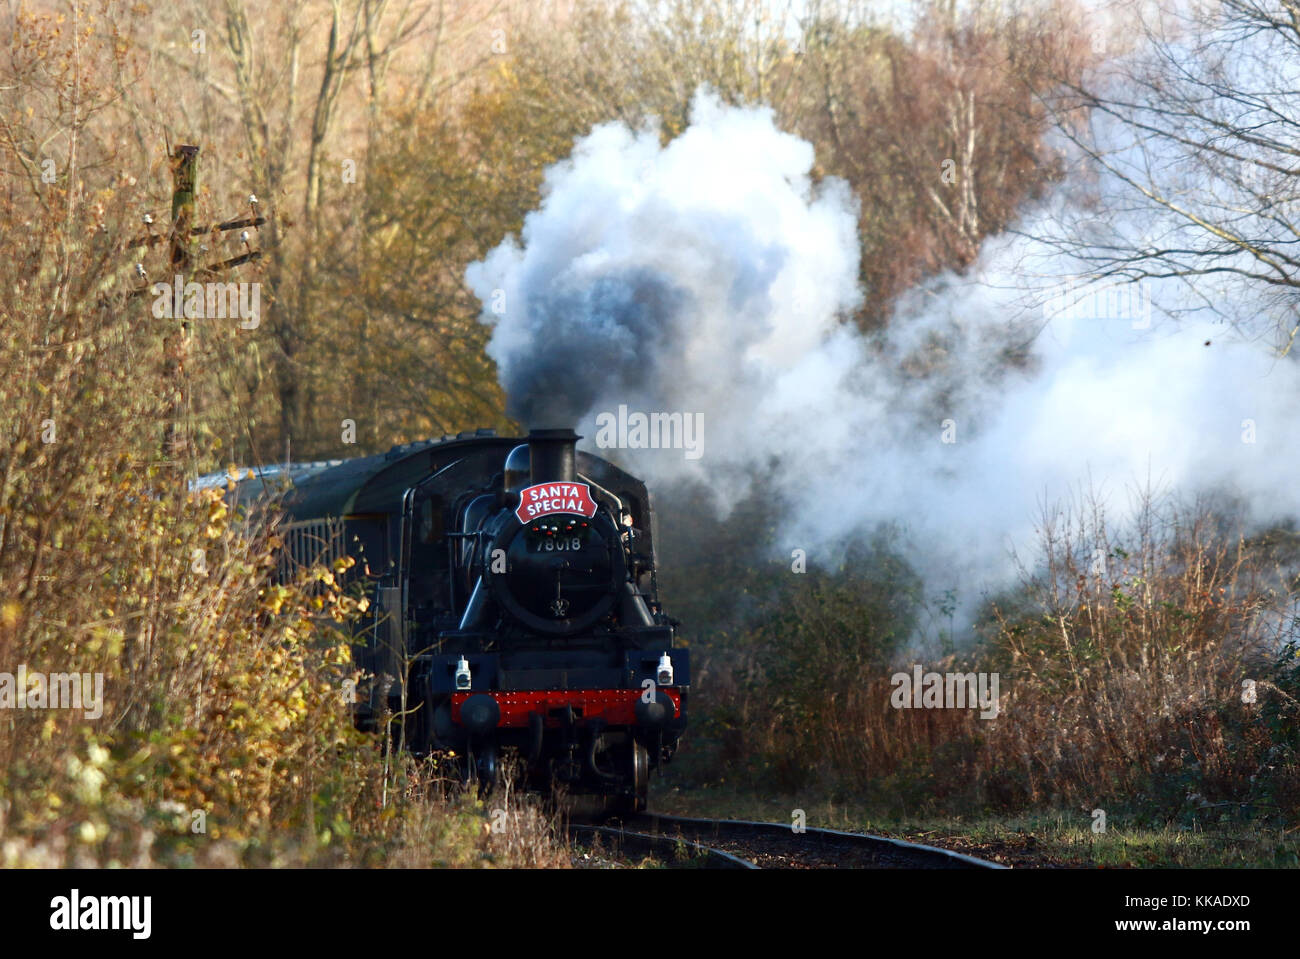 Peterborough, UK. 29th Nov, 2017. The Santa Special steam locomotive train 78018 has begun it's Christmas service Stock Photo